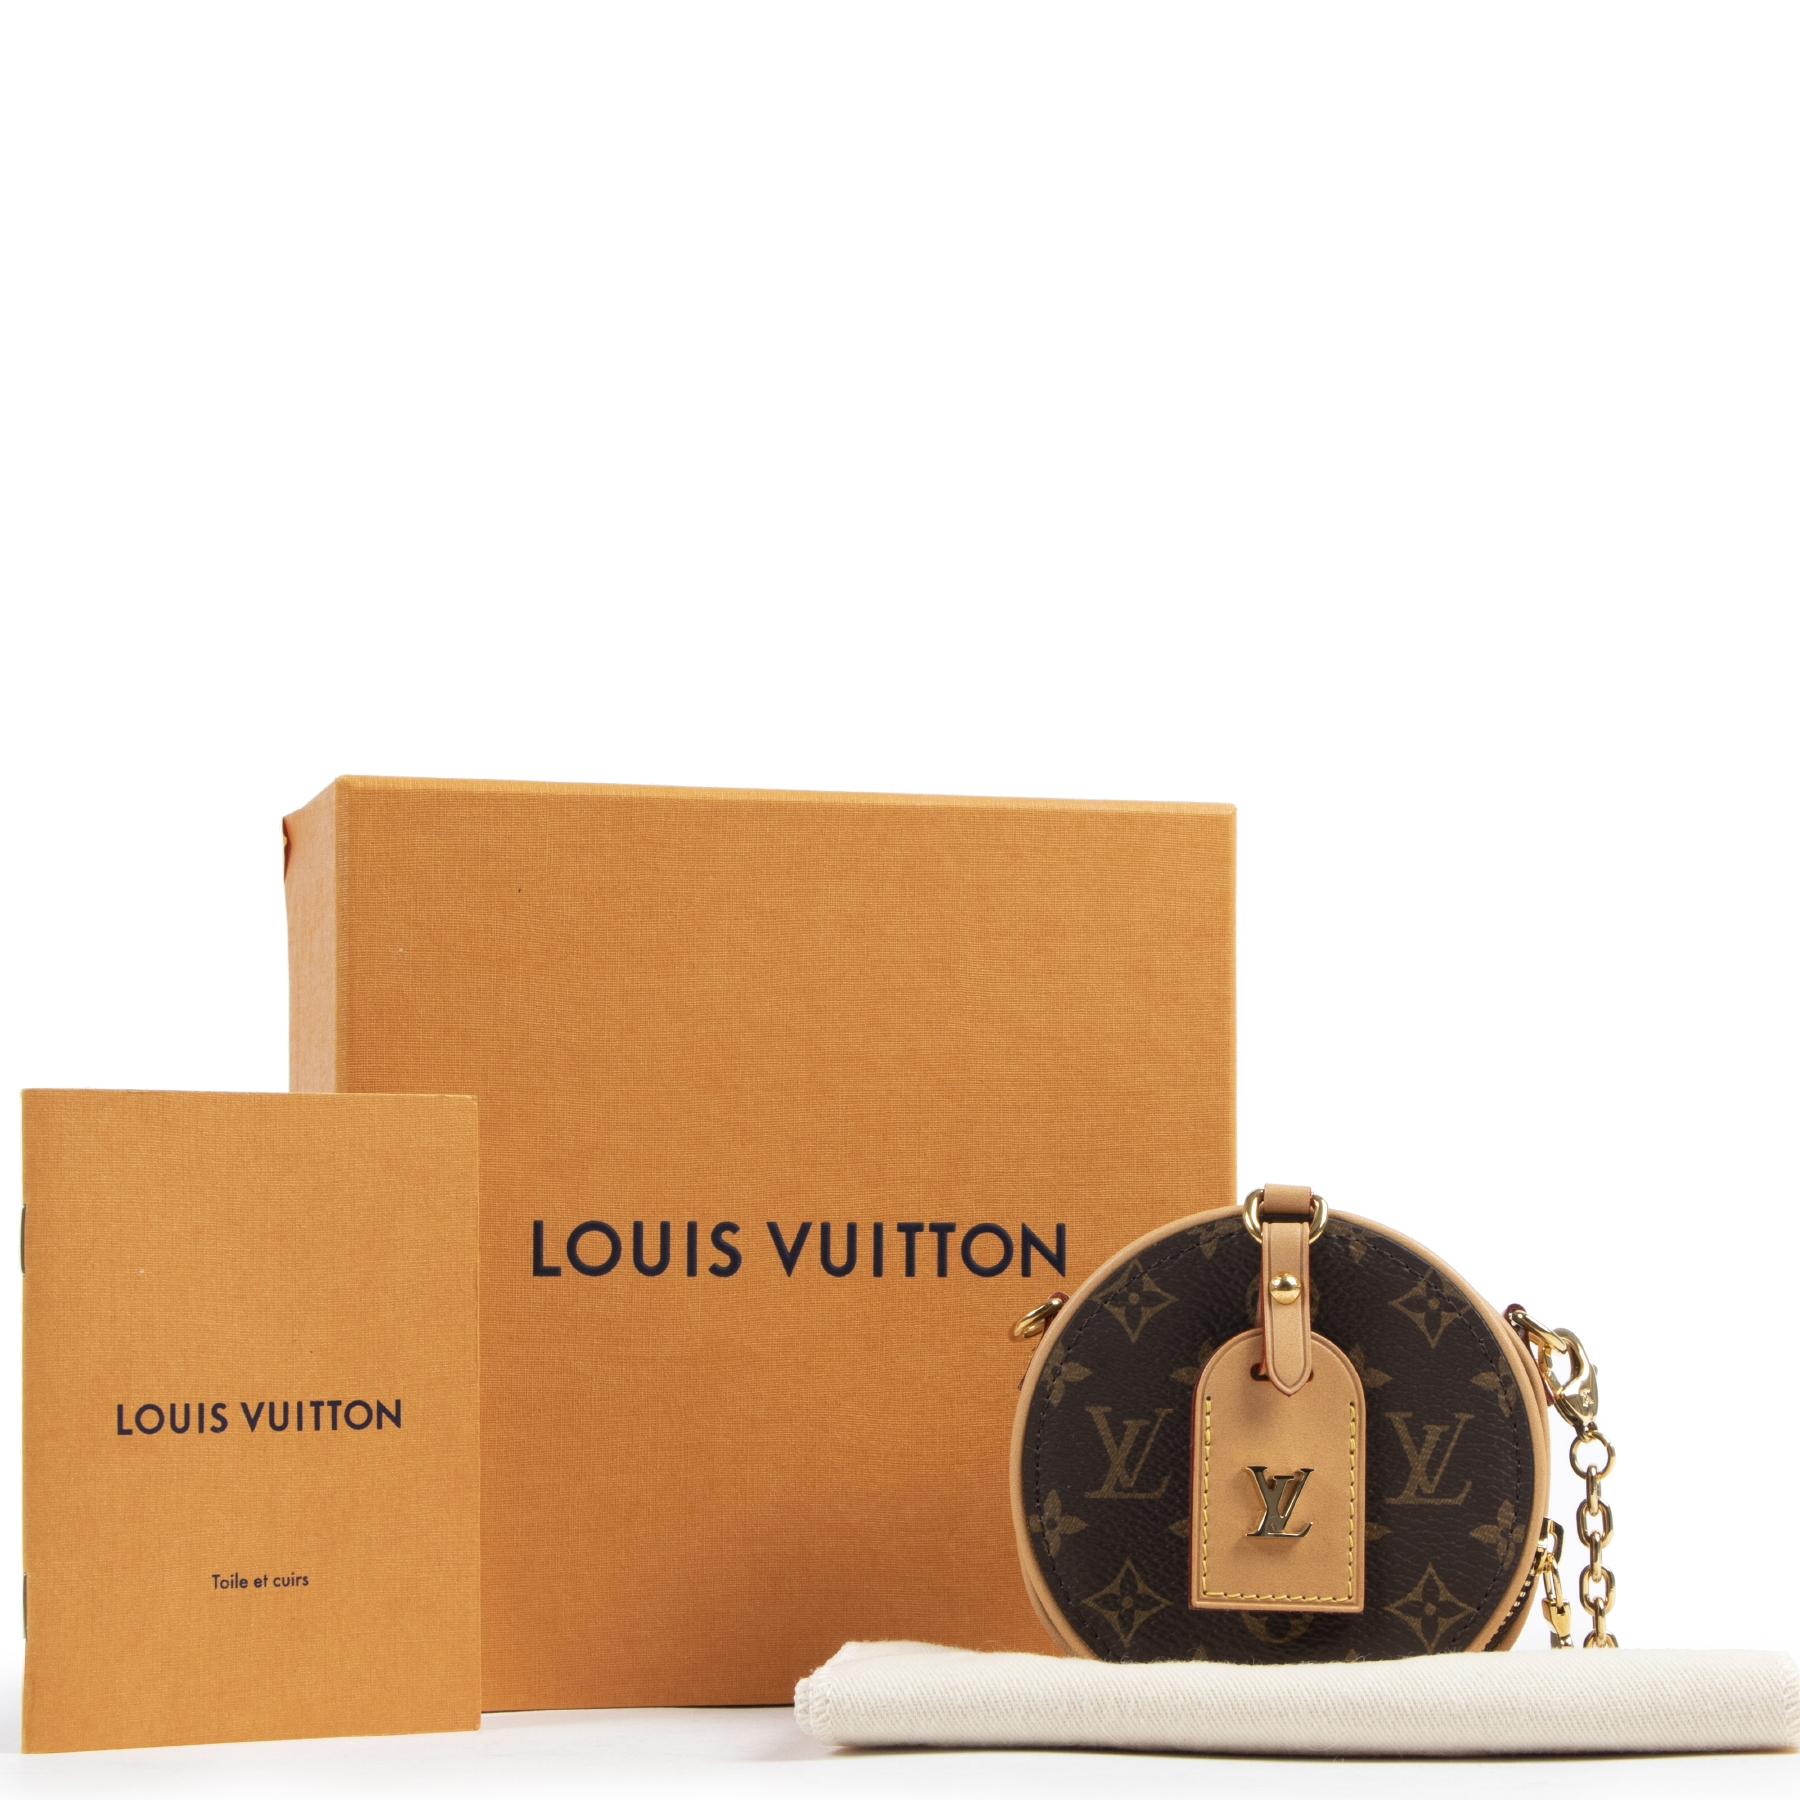 Louis Vuitton Boite Chapeau + Necklace for the best price available online at Labellov secondhand